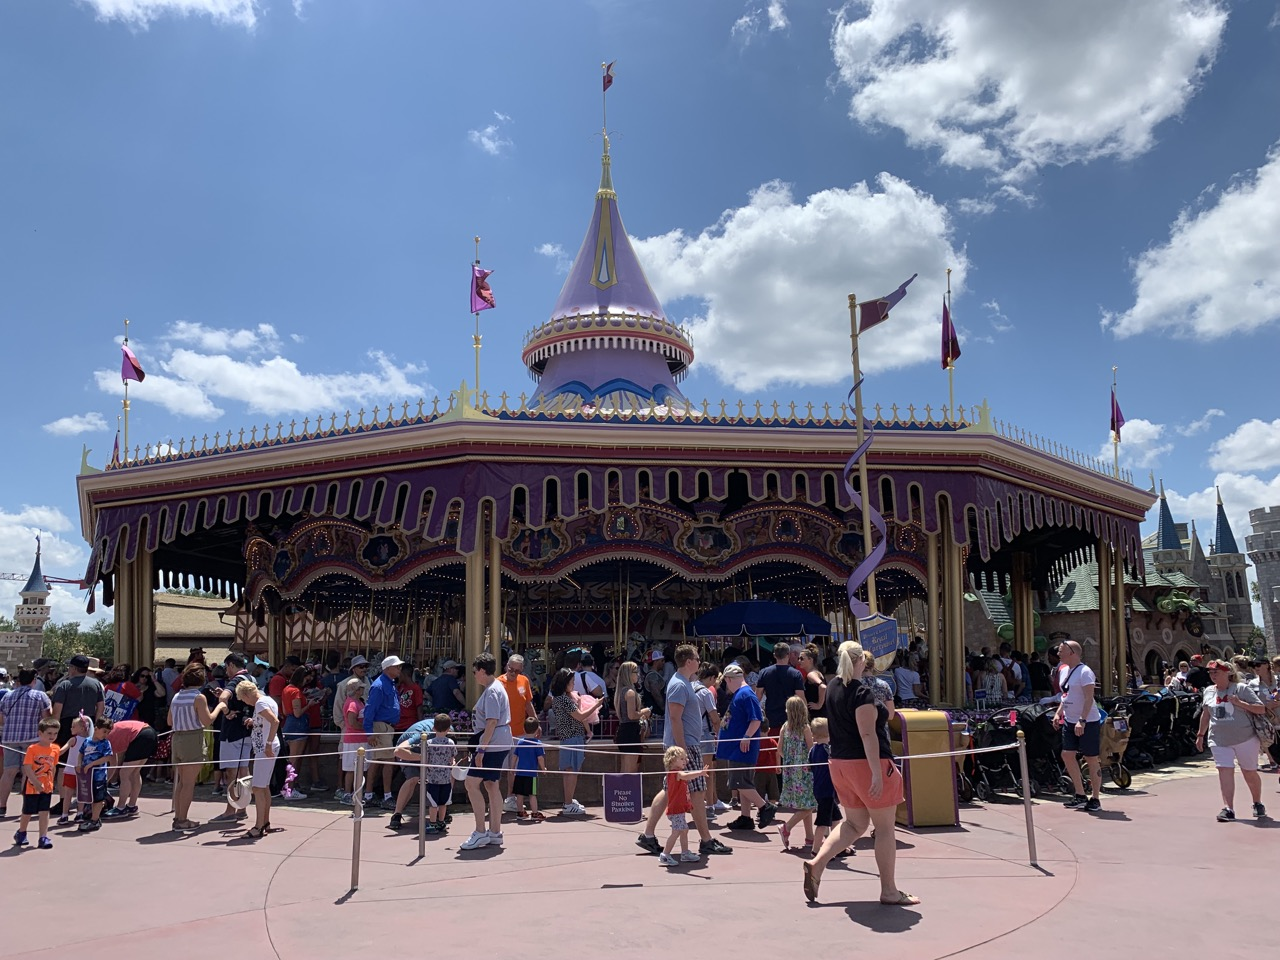 magic kingdom rides 11 carousel.jpeg